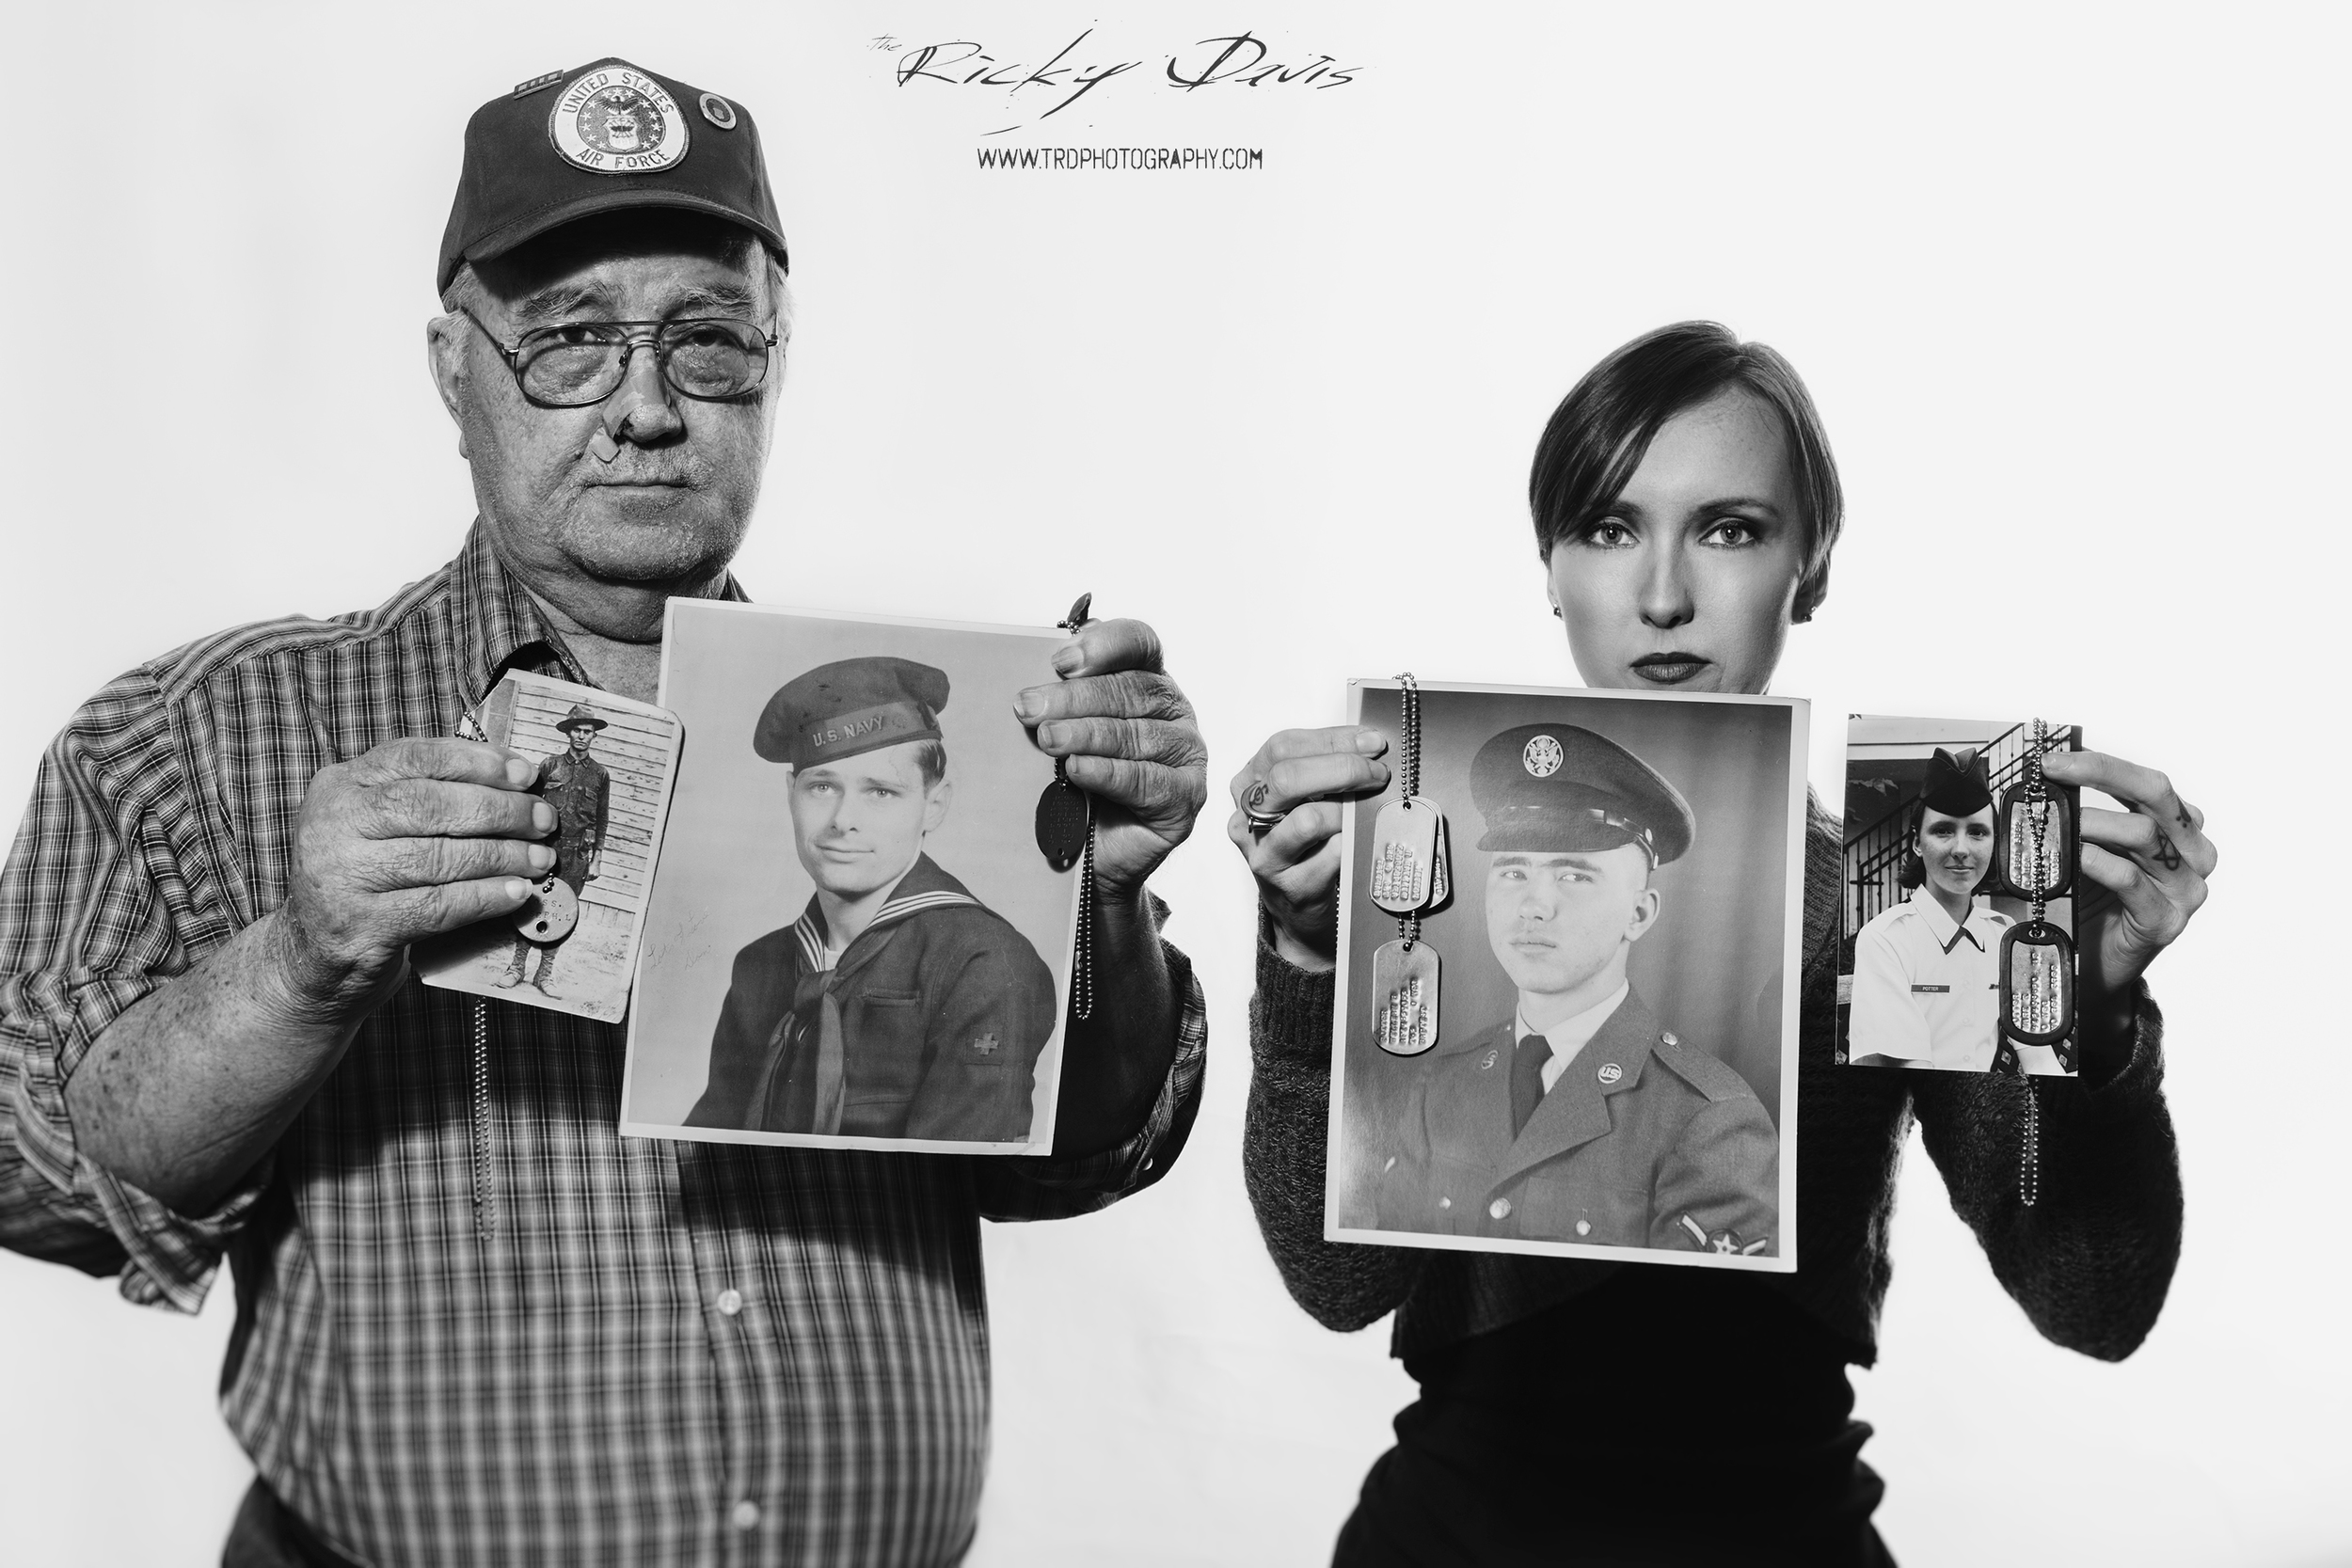 Four Generations of American Heroes who served in WWI, WWII, Vietnam, and Iraq. Photo - Ricky Davis of TRD Photography - Canon 6D